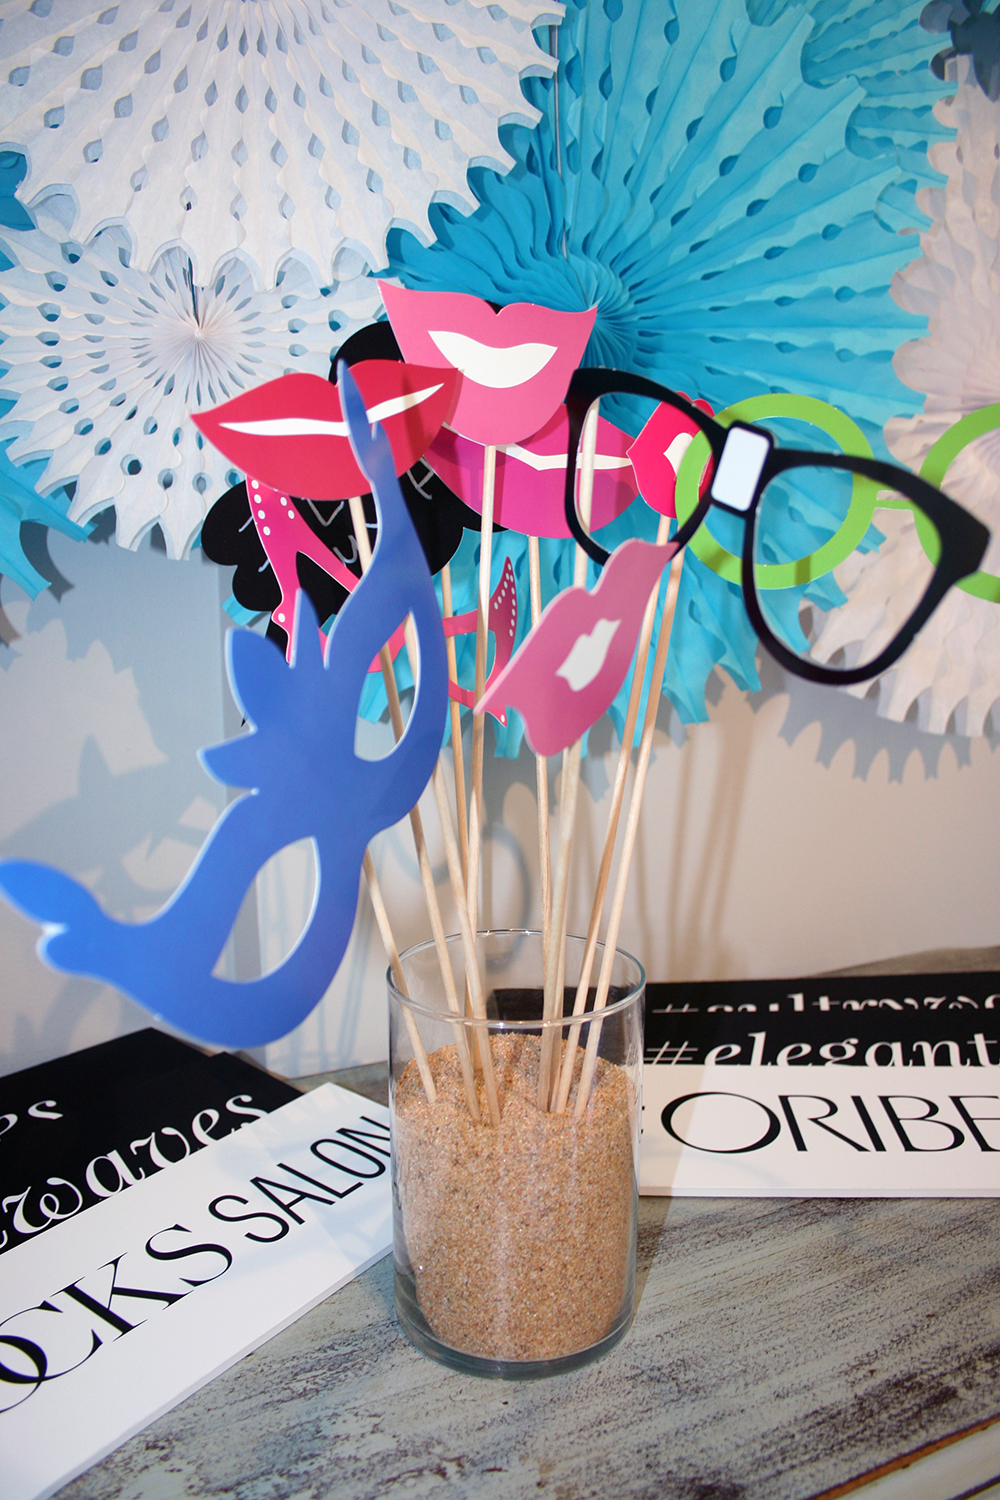 Photo booth props at INTERLOCKS Effortless Summer hair and makeup event